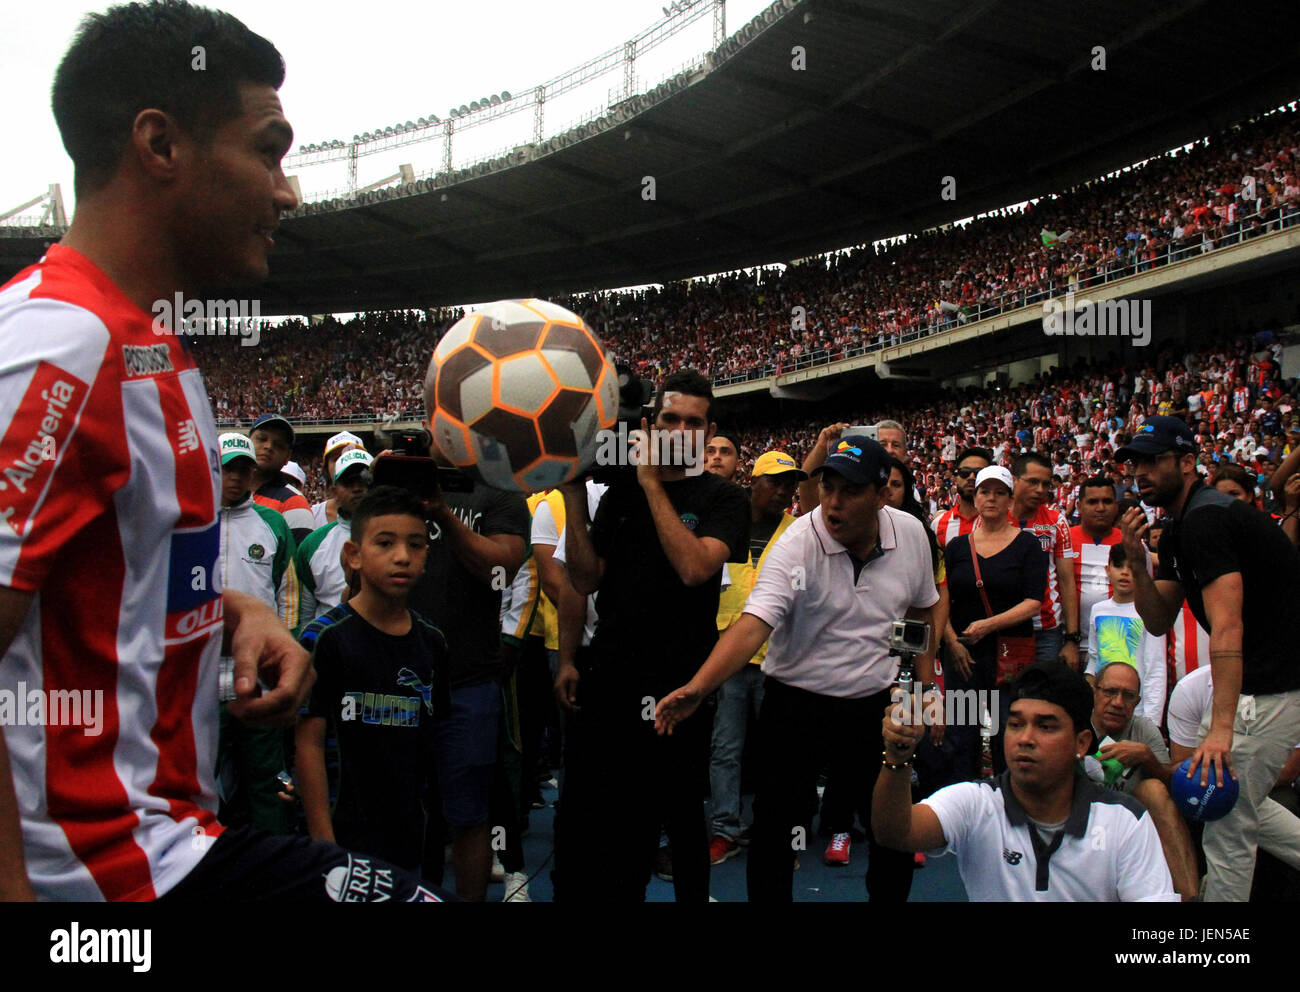 Colombian soccer player Teoilo Gutierrez (L) maneuvers the ball before the fans and the media at Metropolitano Roberto - Stock Image